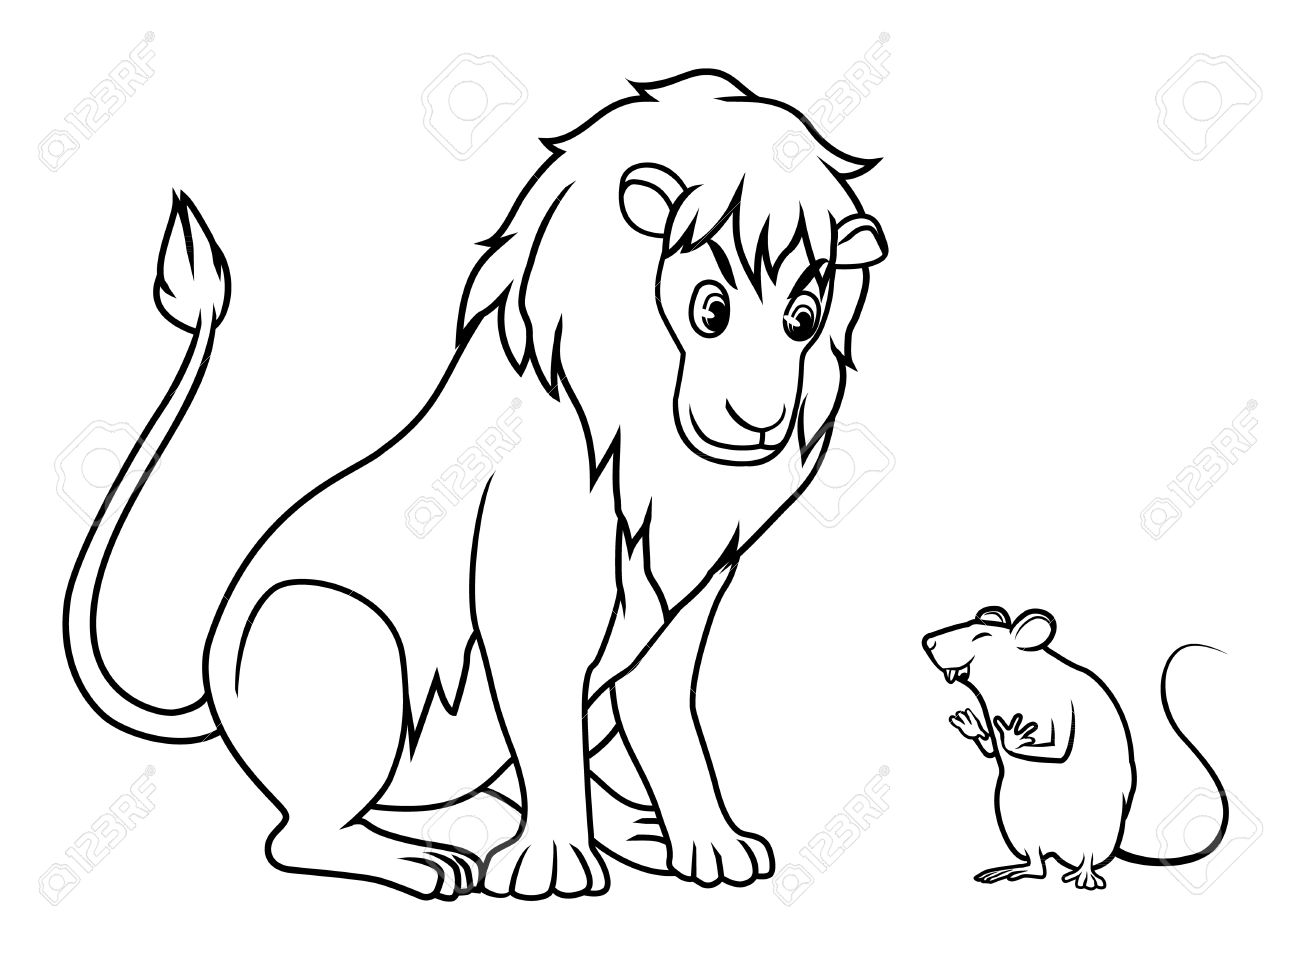 1300x976 How To Draw A Lion Easy Step By Step Drawing Lessons For Kids